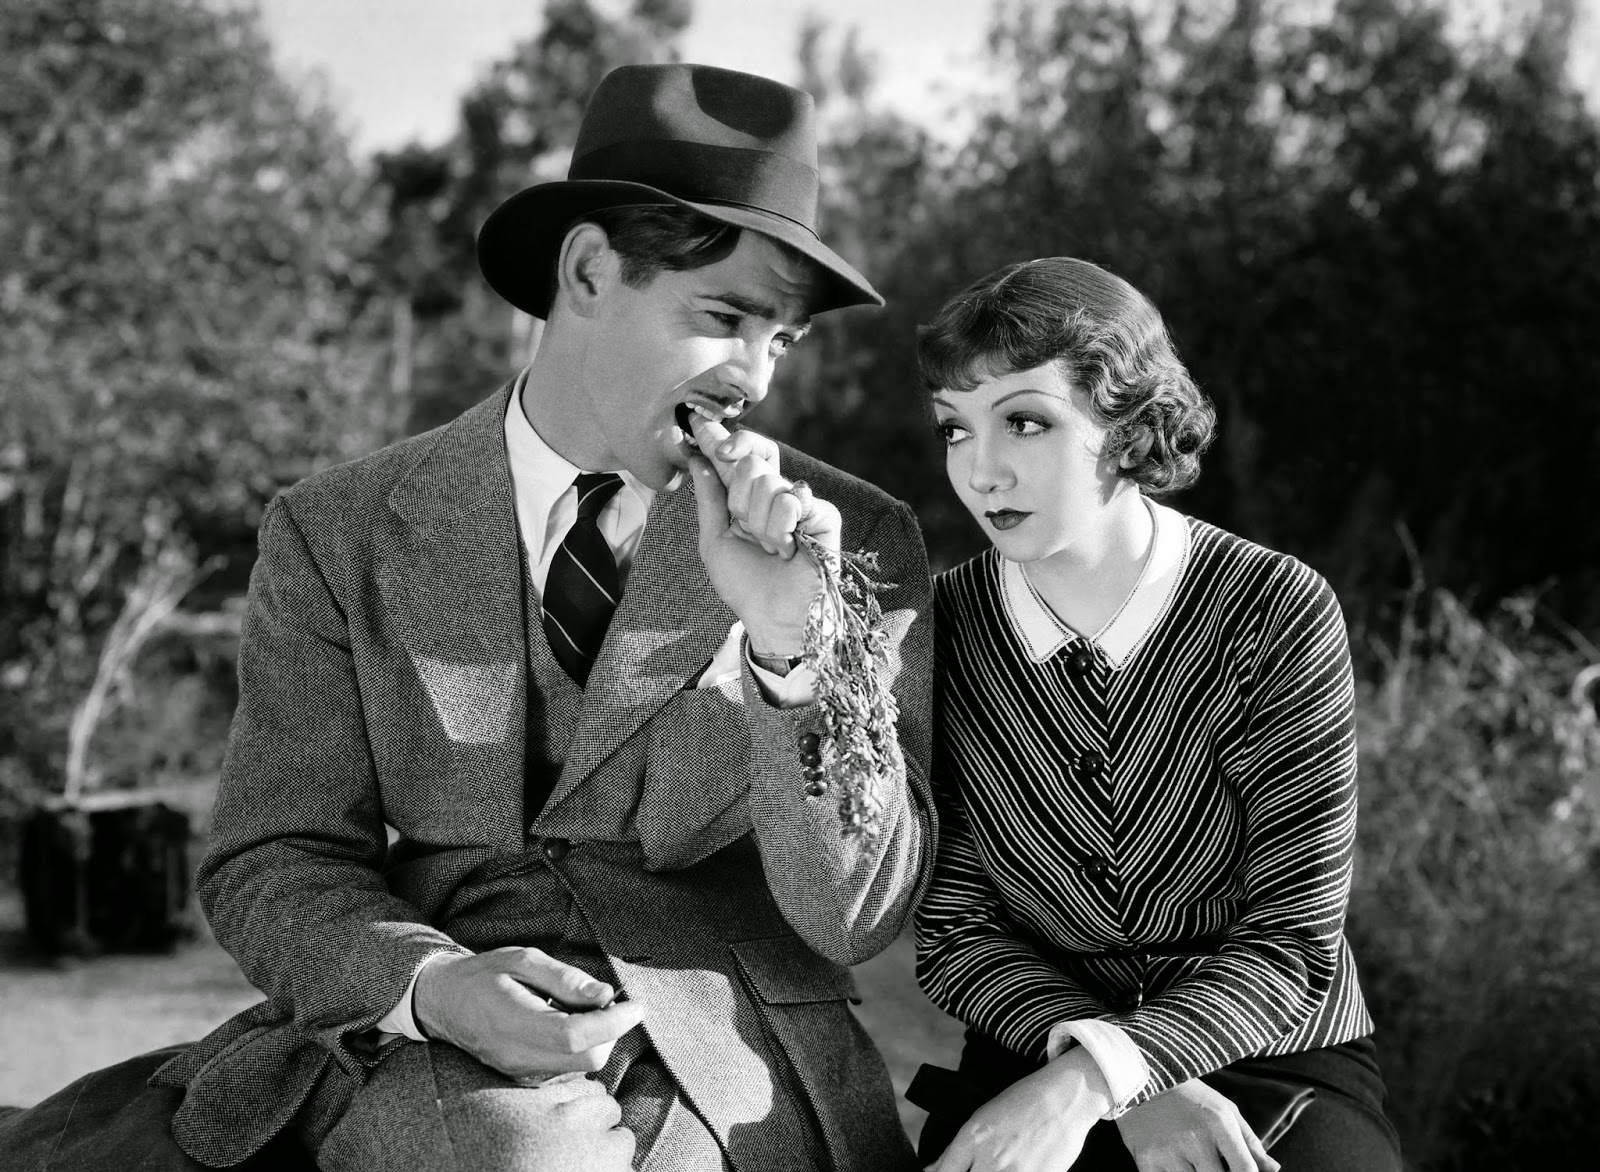 It happened one night was one of the first black white classic films i